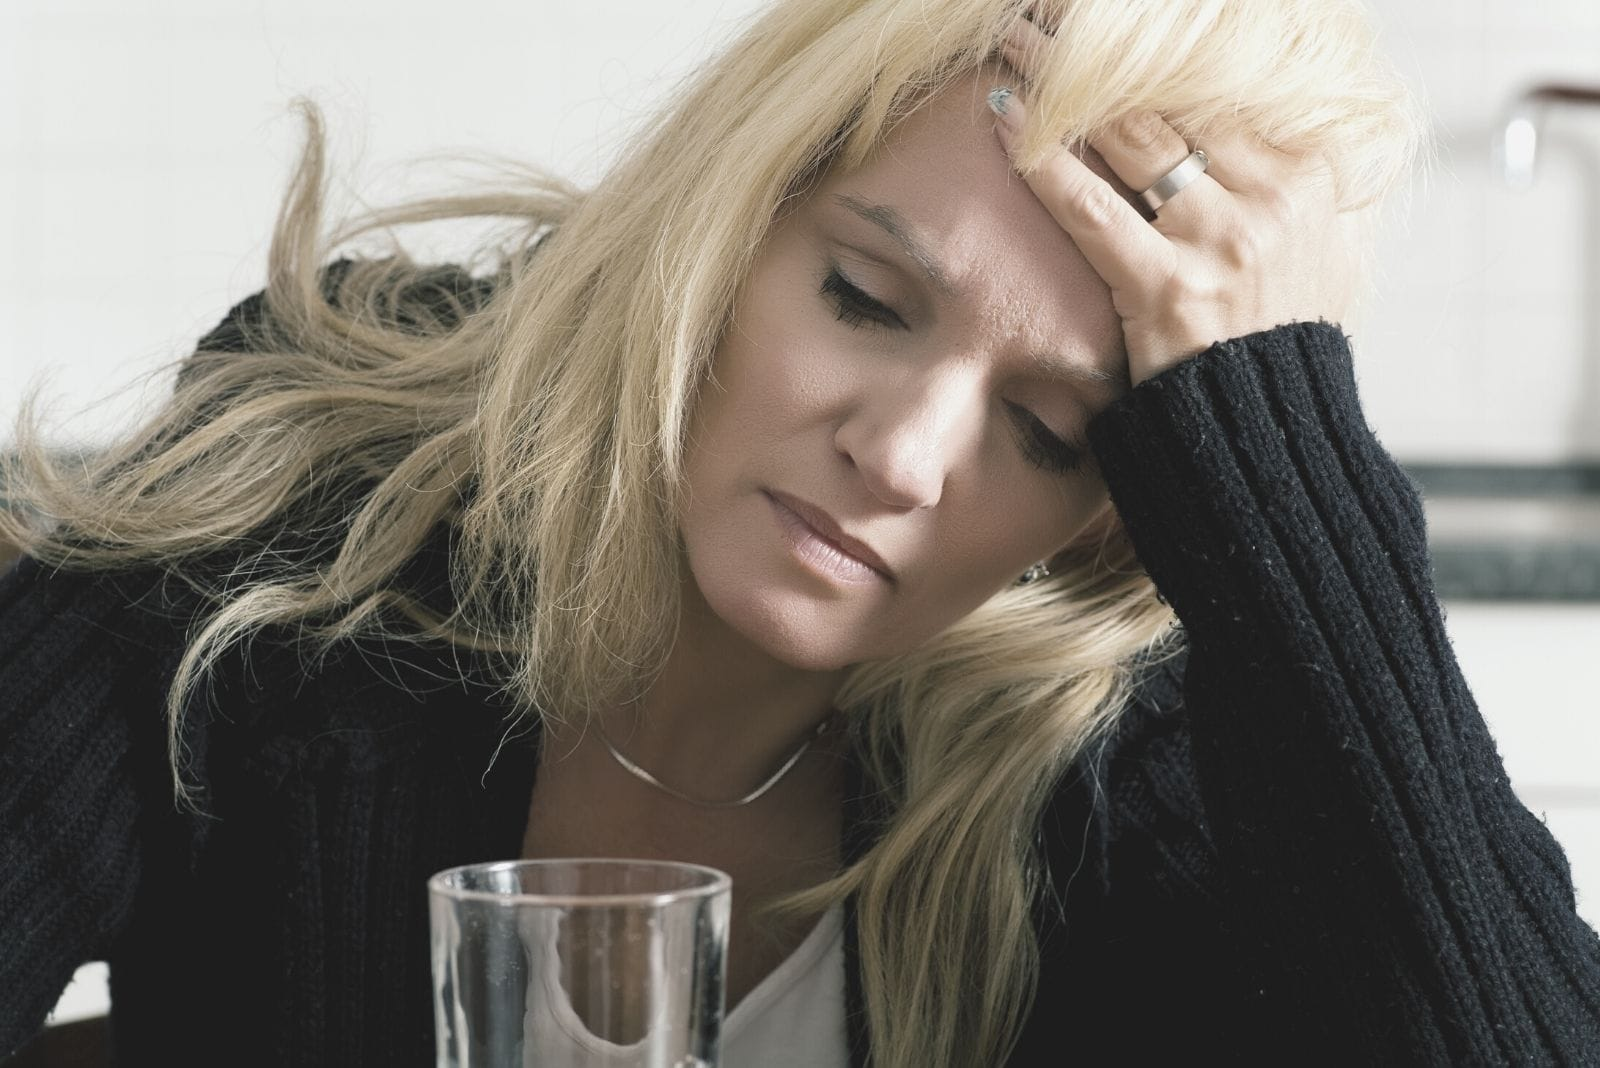 depressed caucasian woman holding her head aching leaning on the table with a glass